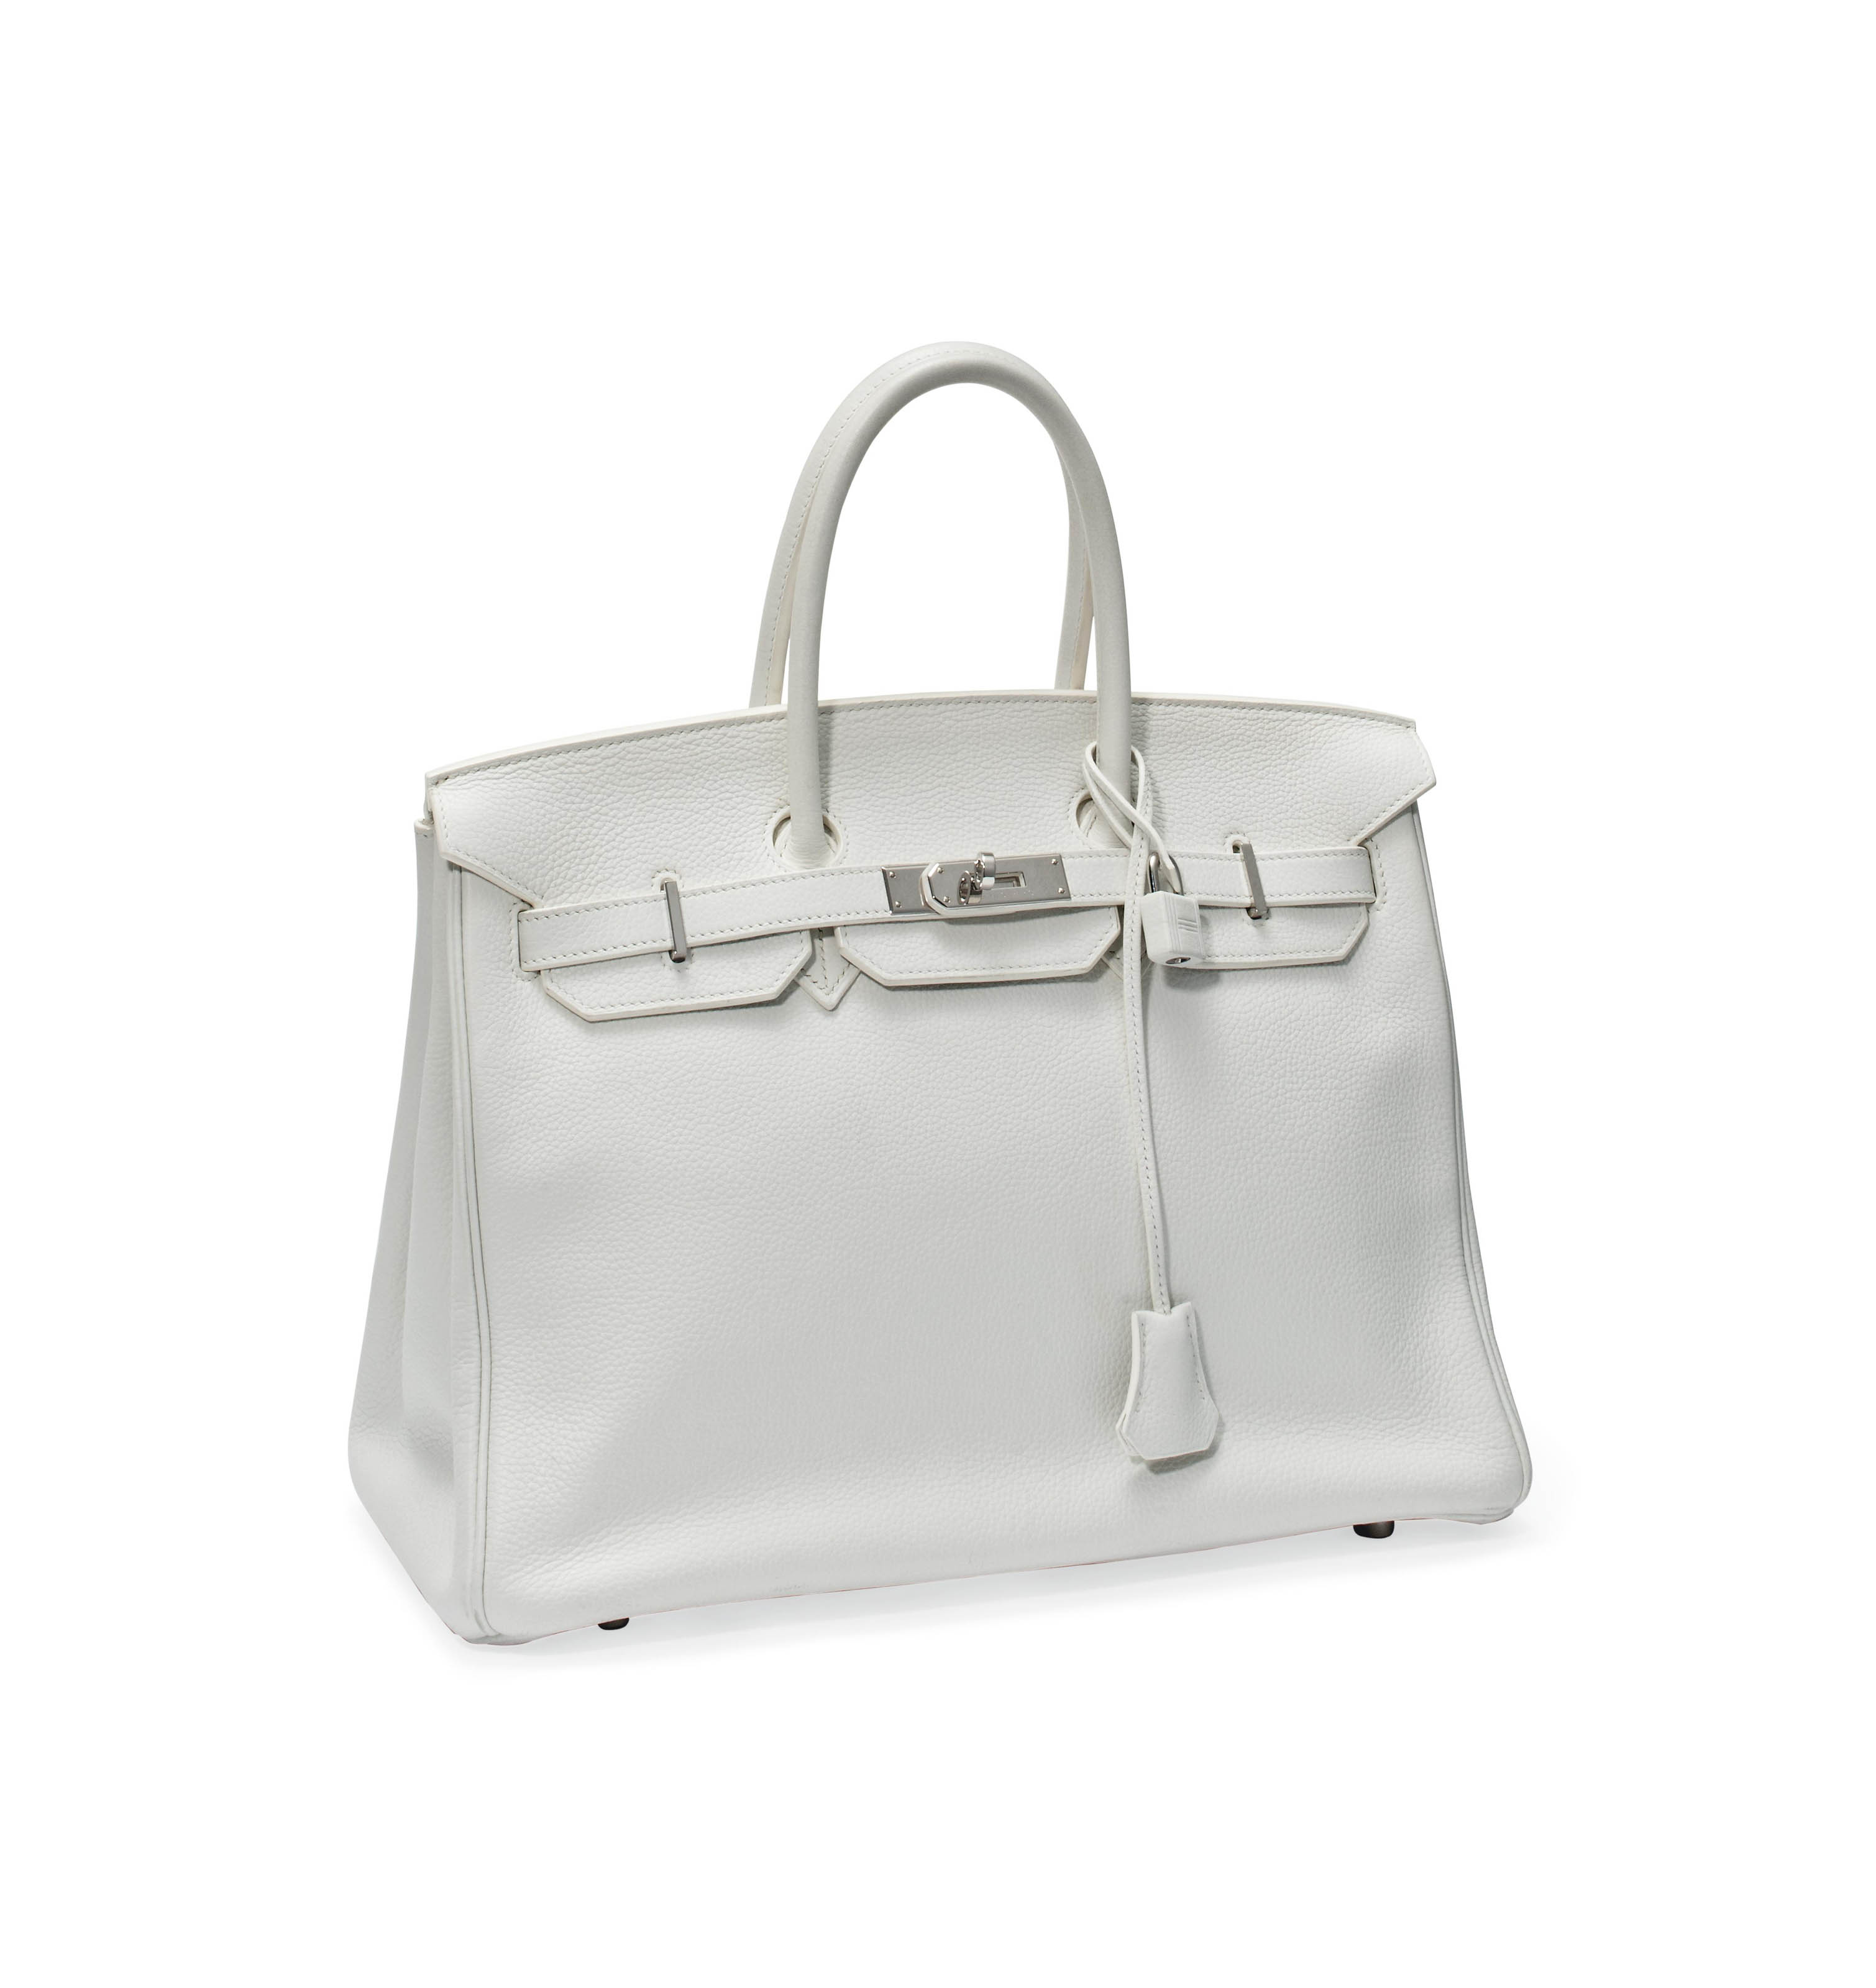 A WHITE LEATHER 'BIRKIN' BAG